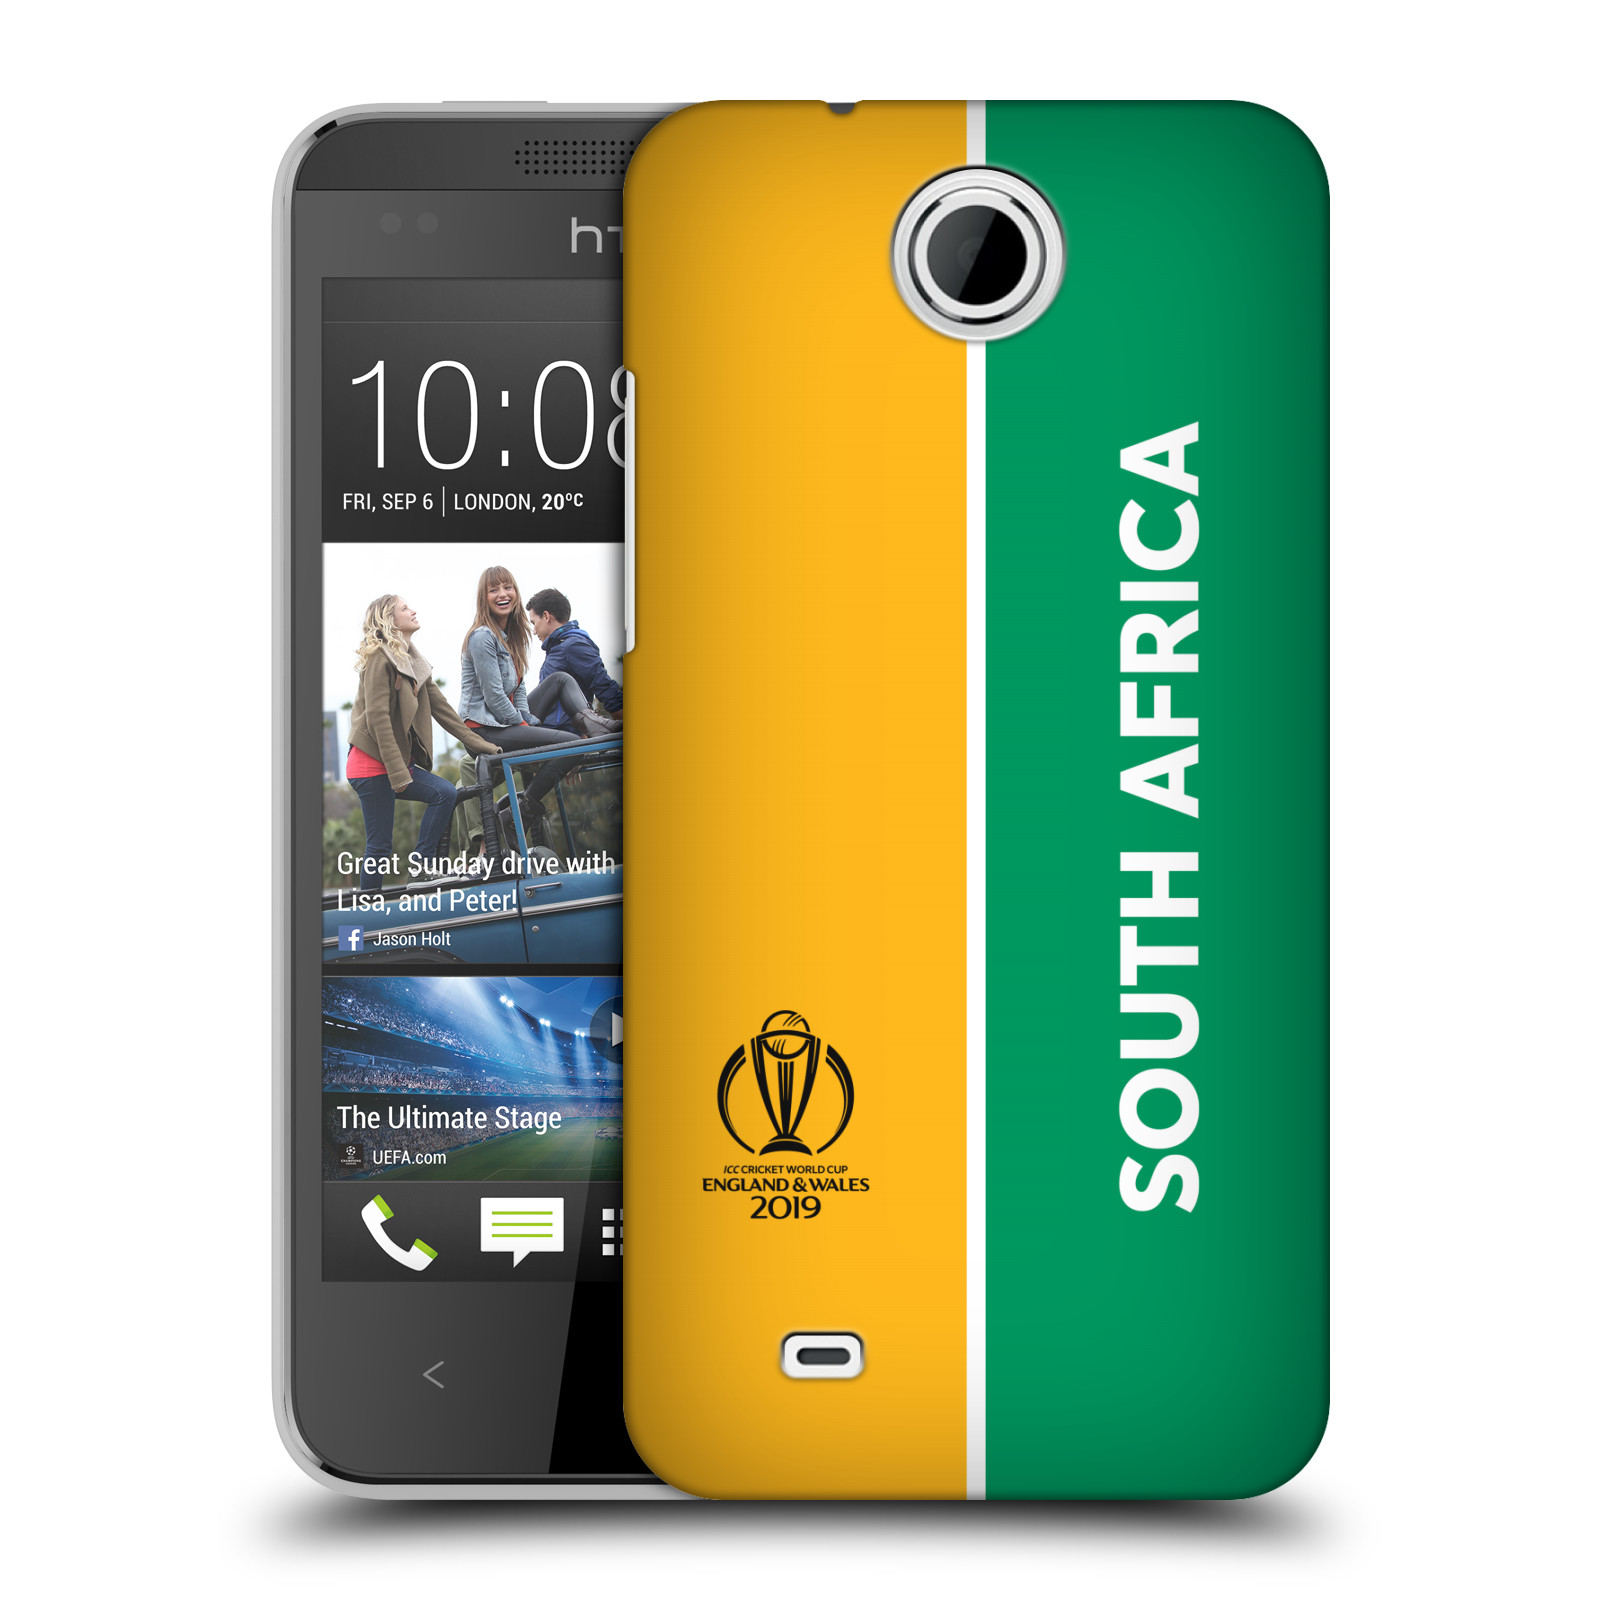 OFFICIAL-ICC-SOUTH-AFRICA-HARD-BACK-CASE-FOR-HTC-PHONES-3